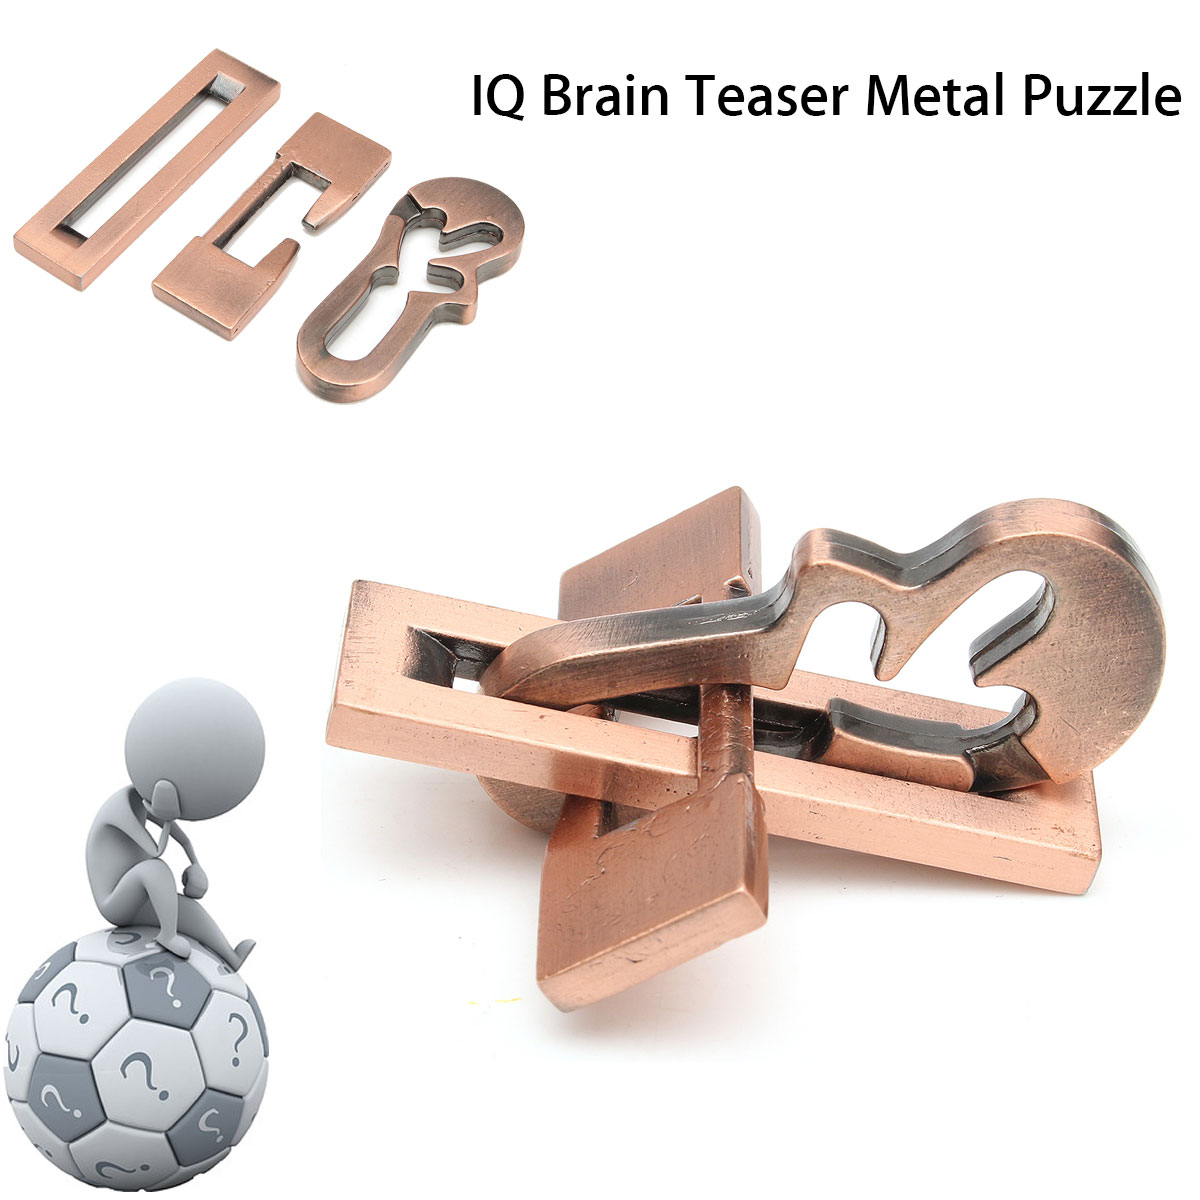 Vintage Metal Puzzle IQ Mind Brain Teaser Educational Toy Gift For Adults Children Kids Game Toys ...